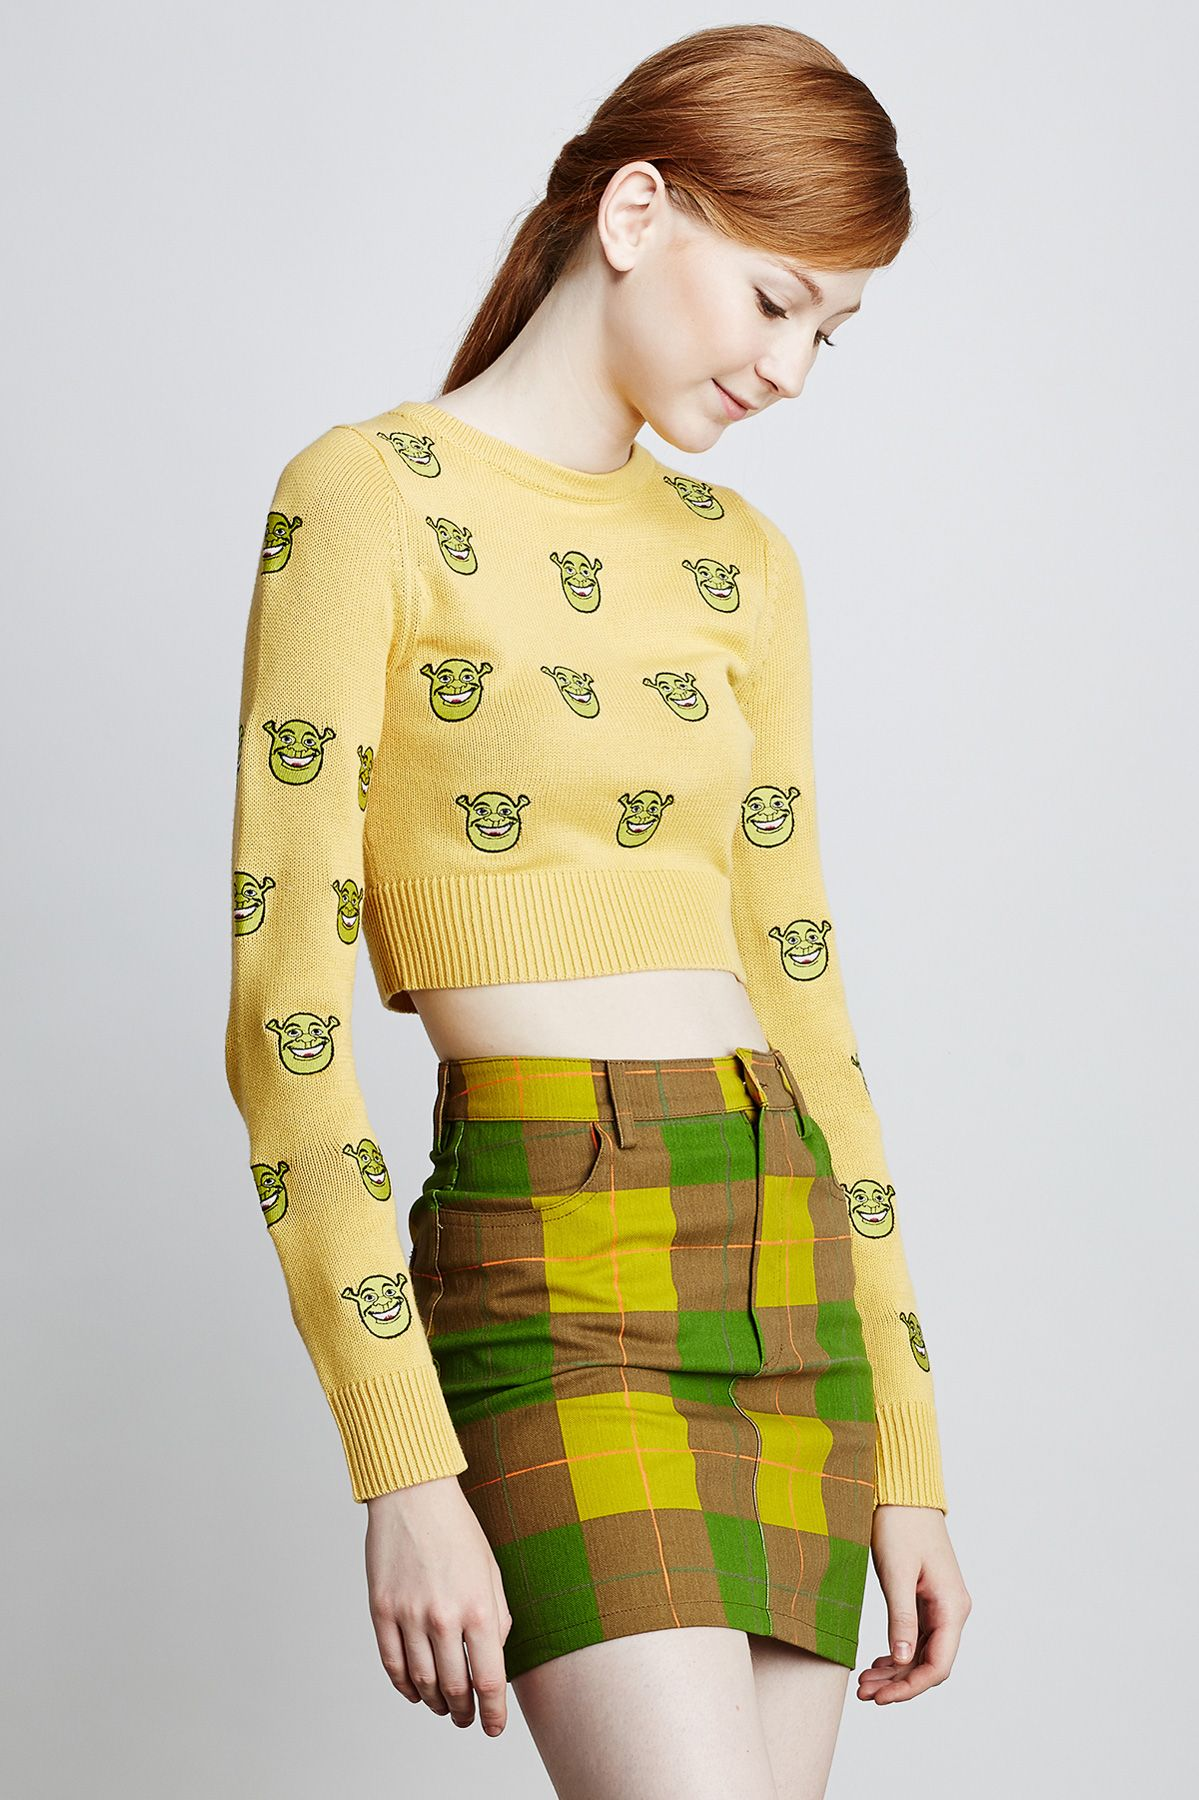 SHREK FACE EMBROIDERY KNIT CROPPED TOP - Google zoeken | Asos ...